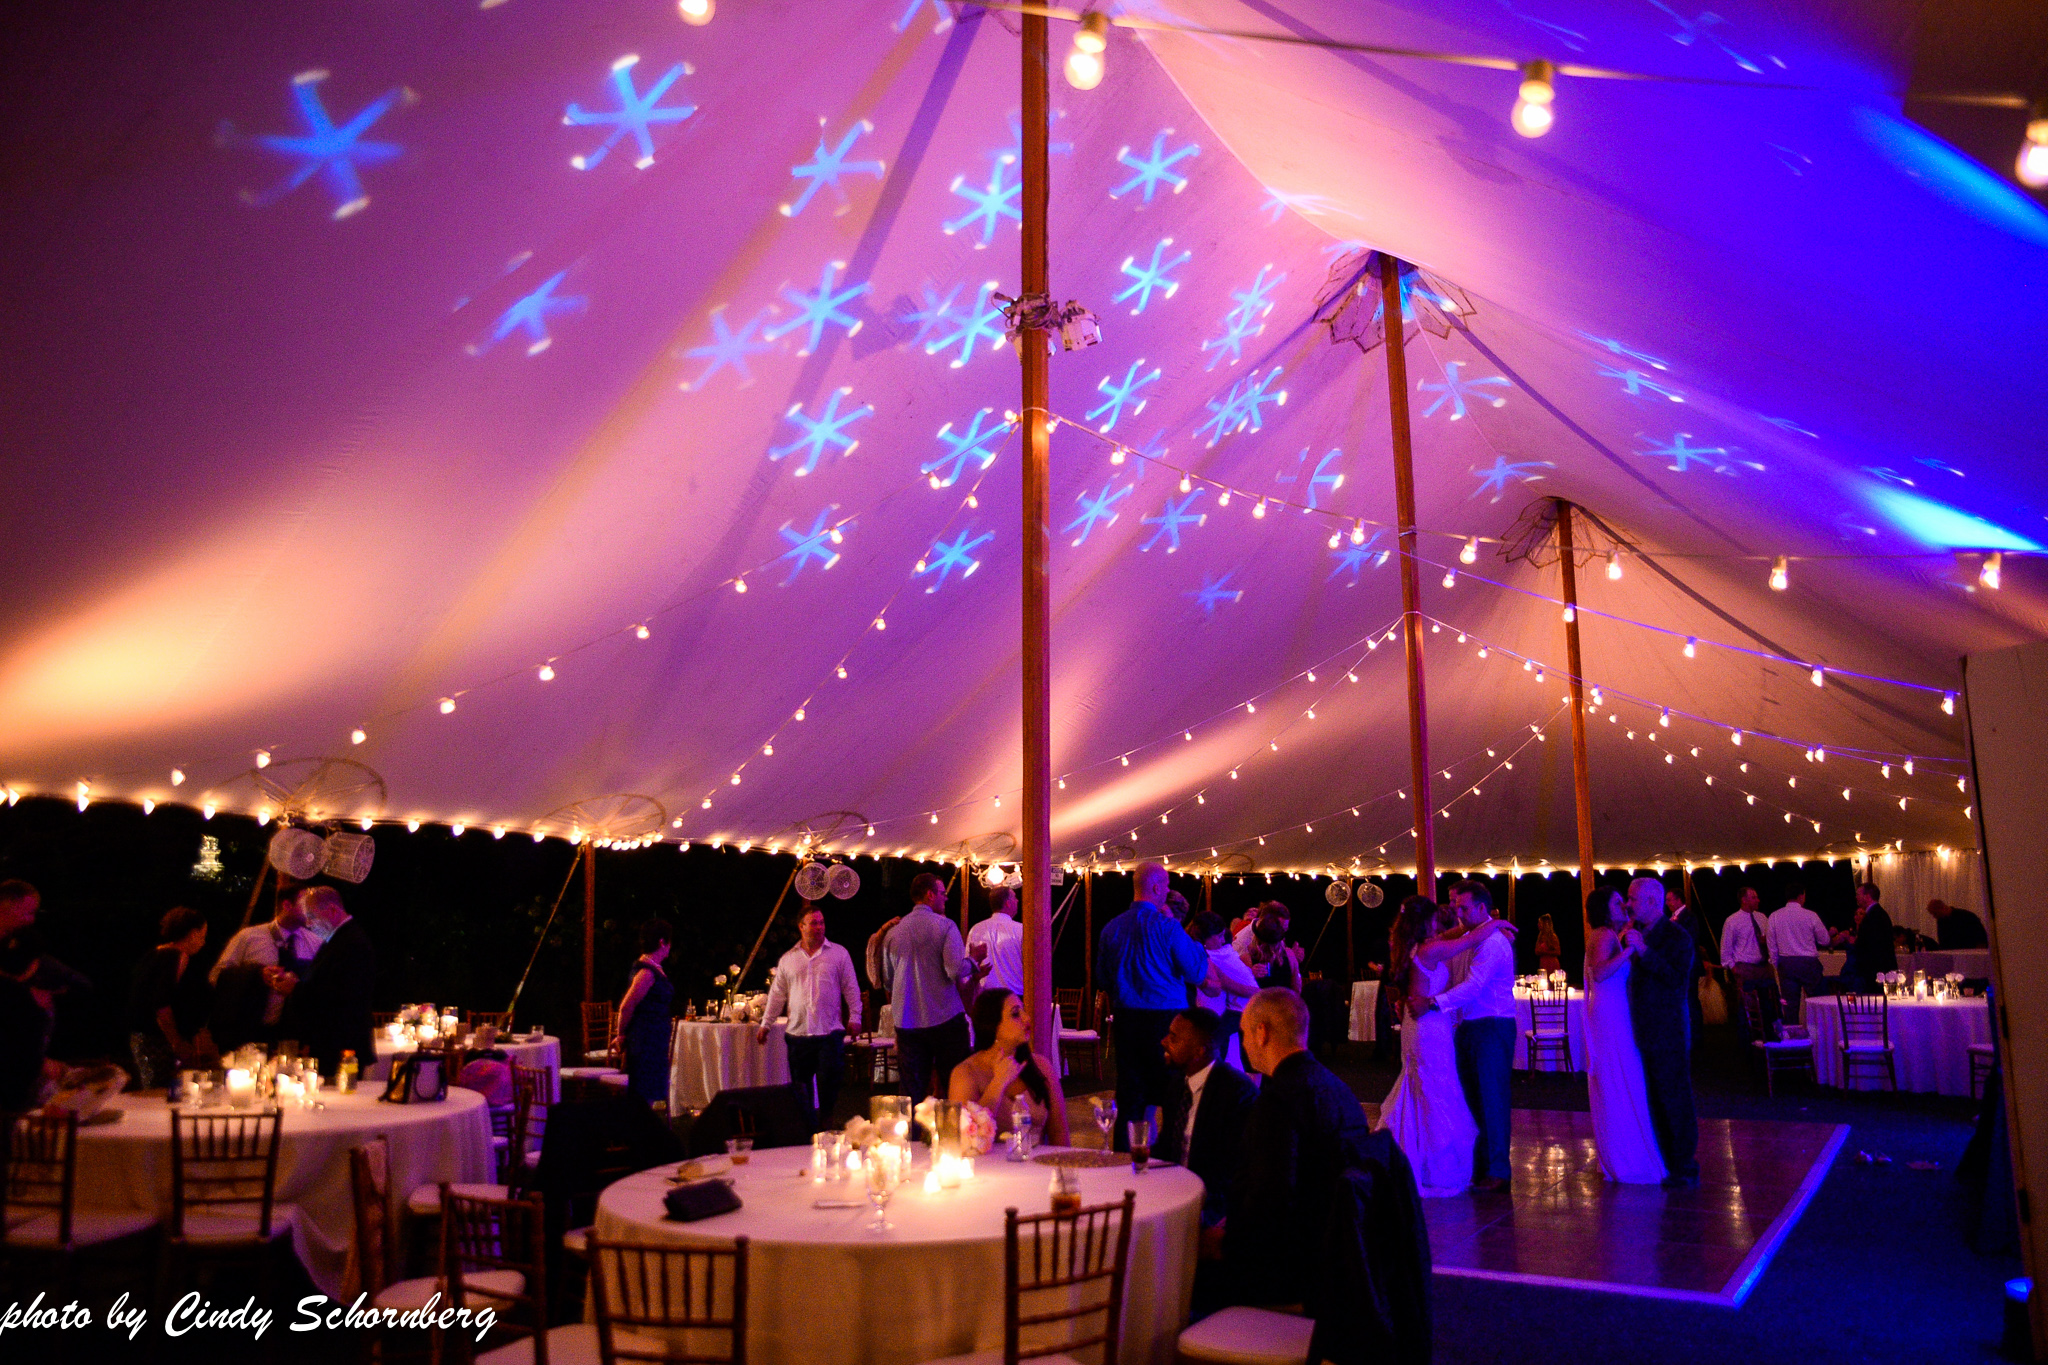 vineyard_weddings_Charlottesville_Virginia_020.jpg